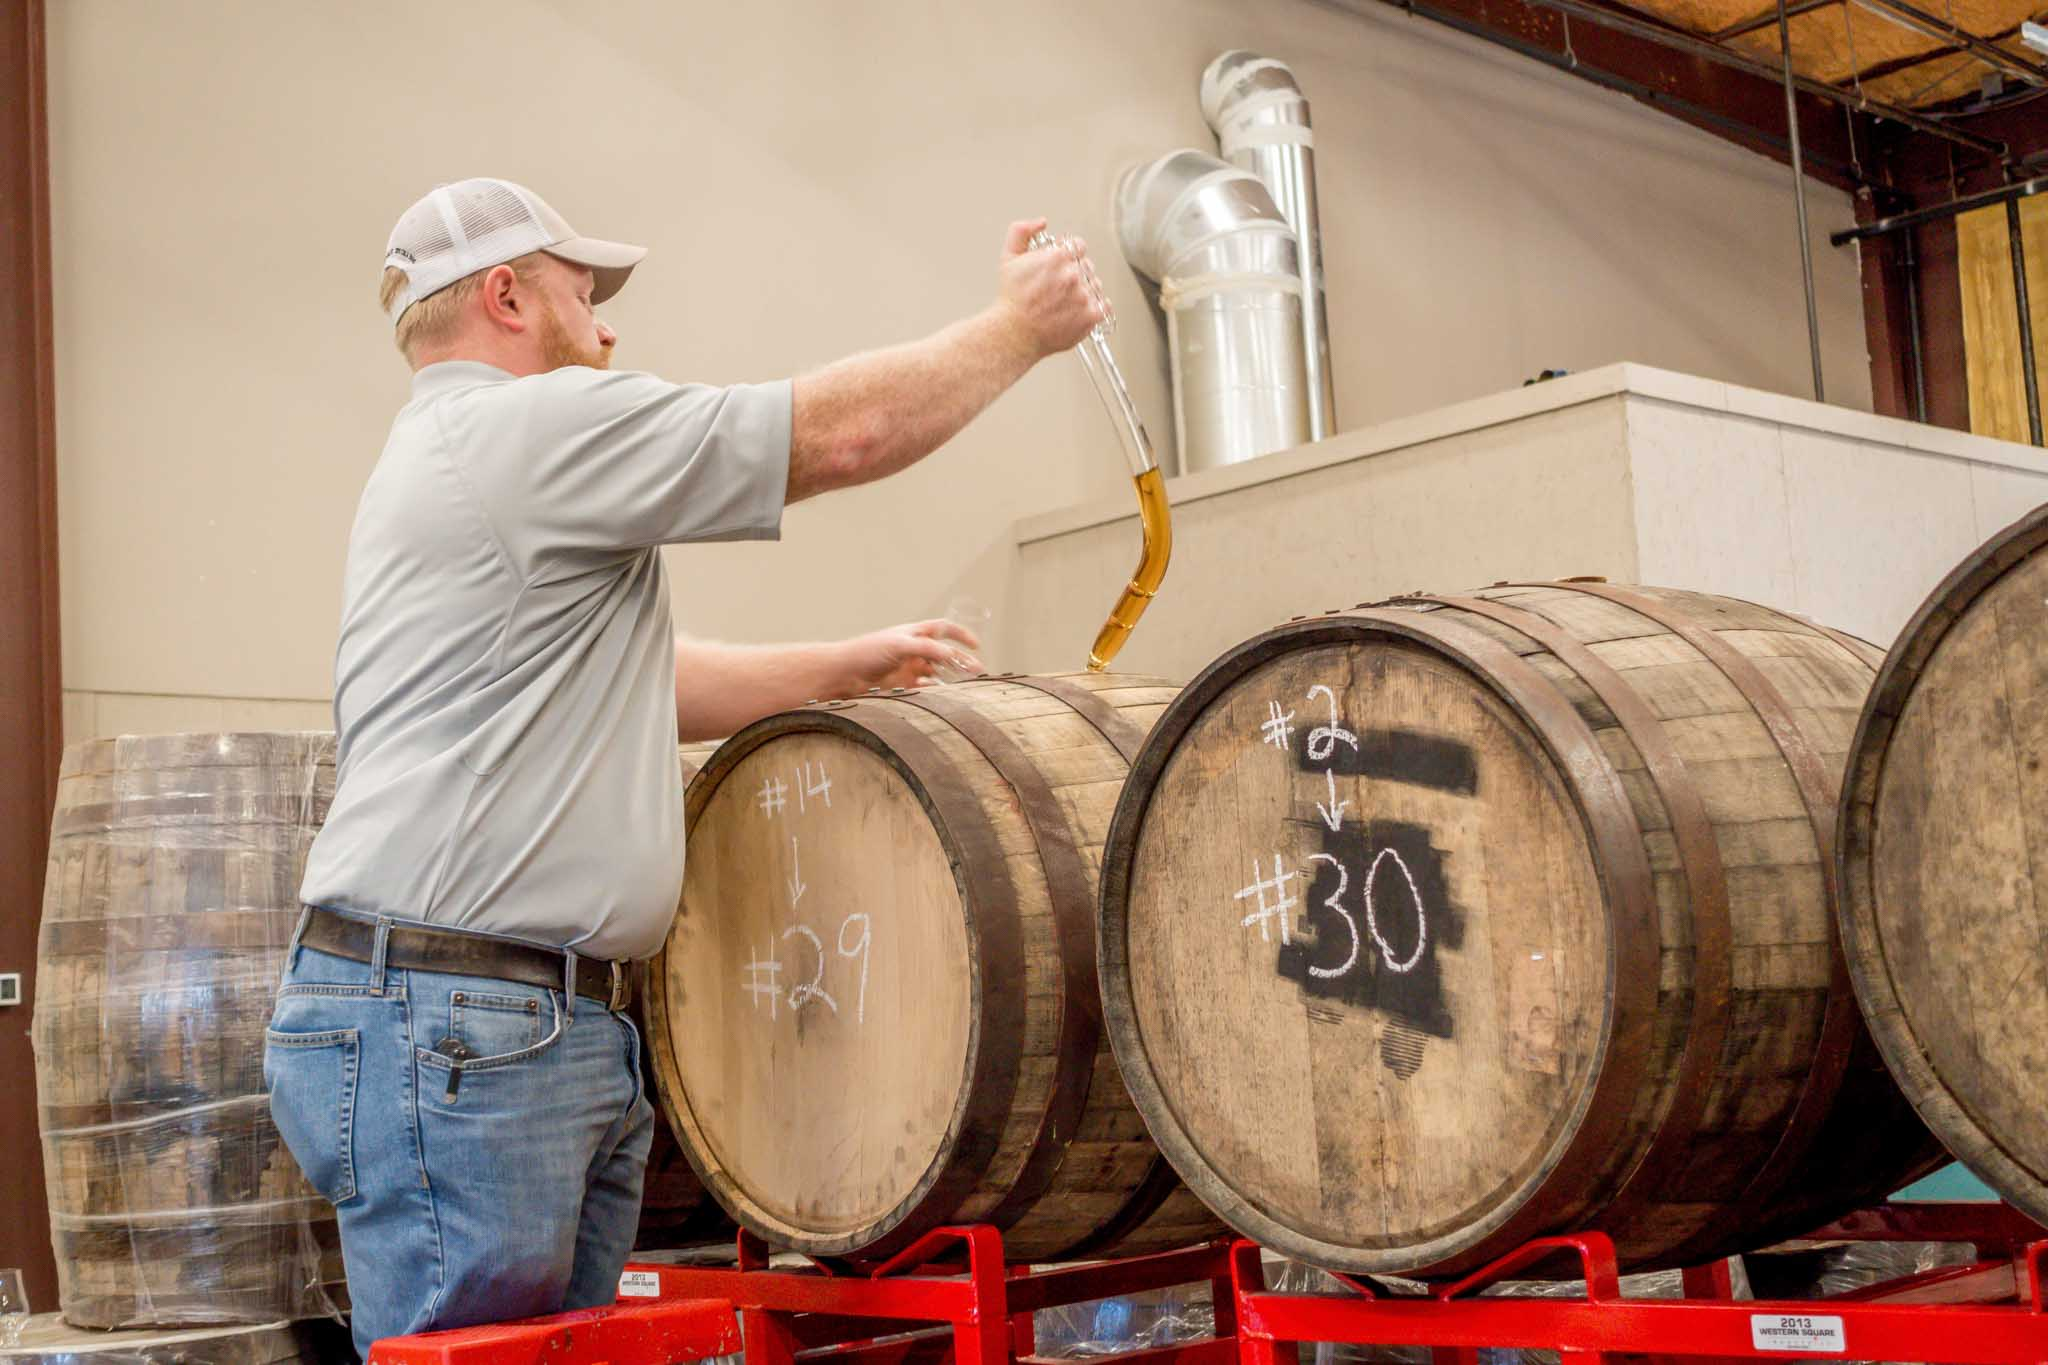 Opening a barrrel of whiskey at Ironroot Republic, one of the distilleries in Texas